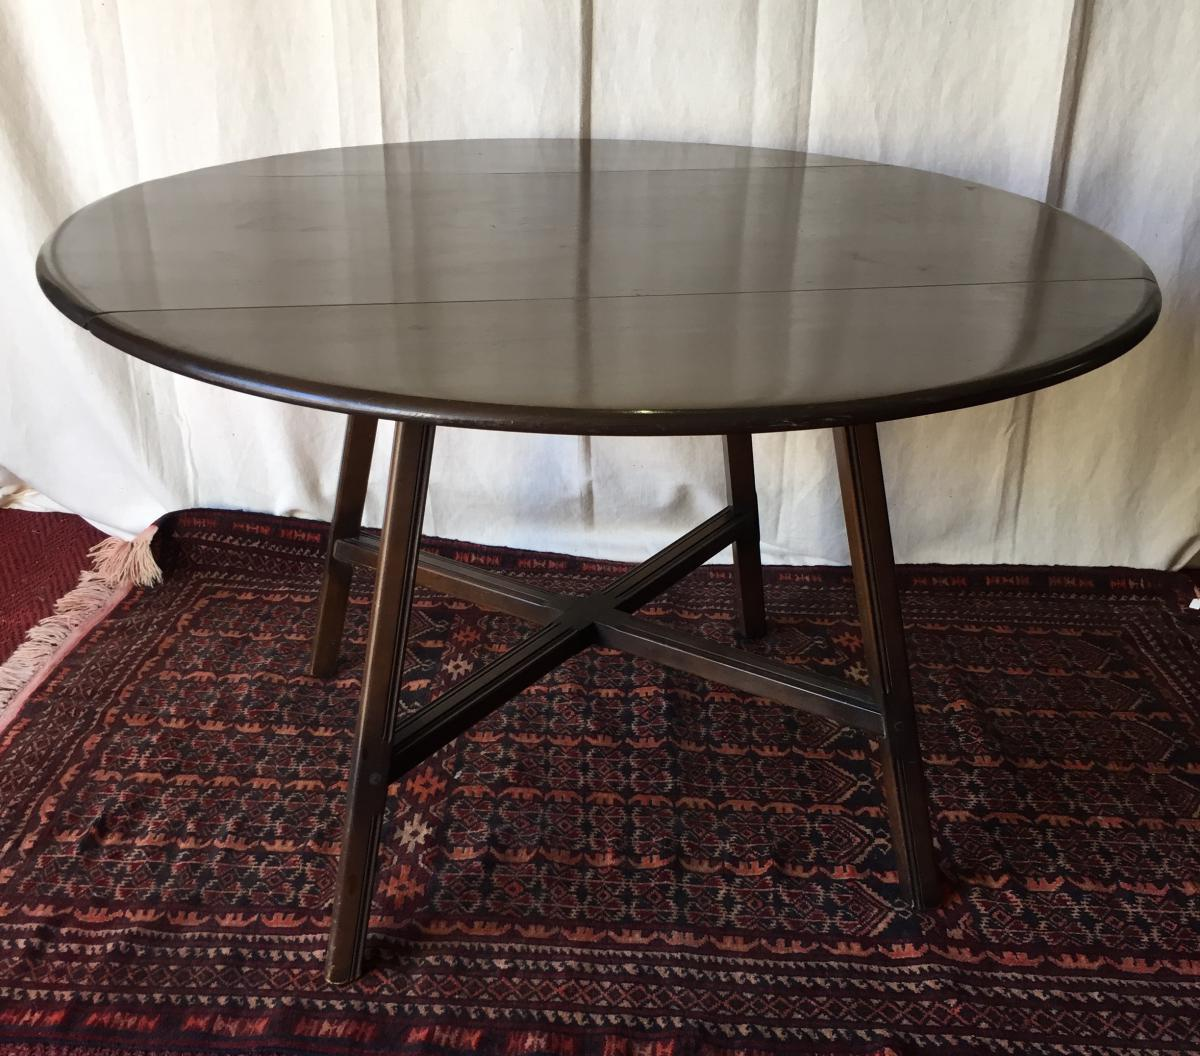 Table ercol 1960 tables salle manger for Salle a manger 1960